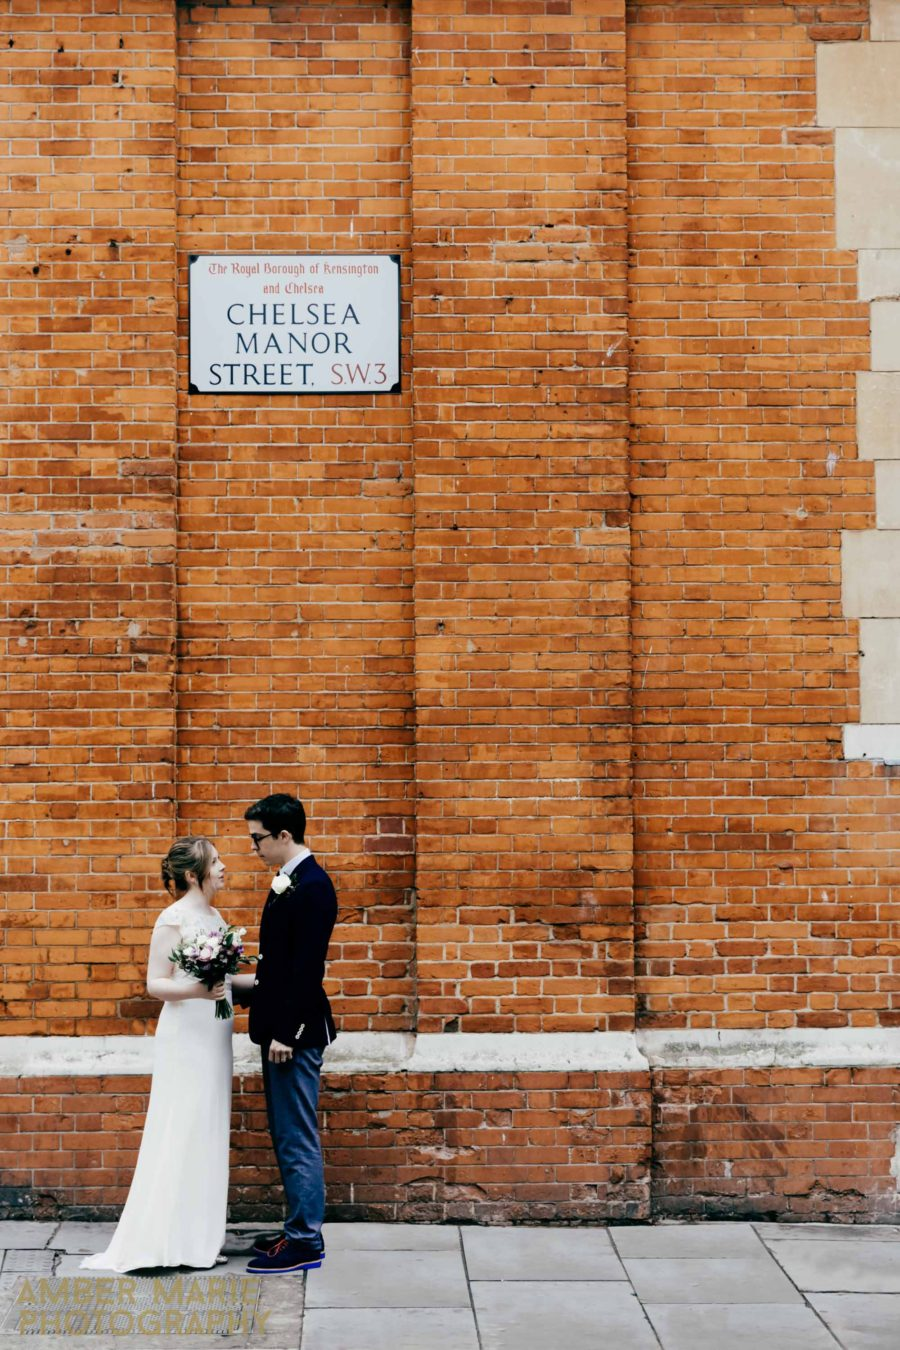 Chelsea & Kensington Wedding Photography